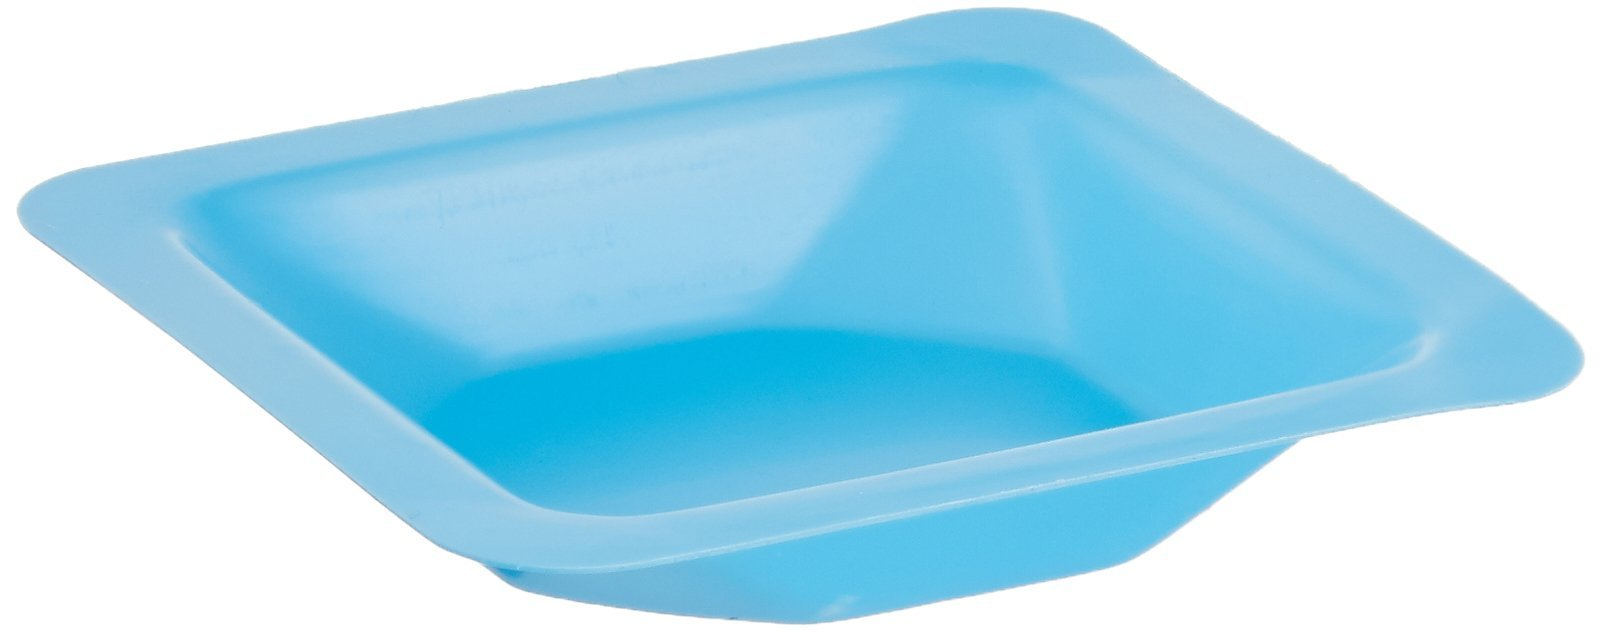 Heathrow Scientific HS120222 Weigh Boat, Anti-Static, Square, Small, Blue (Pack of 500) by Heathrow Scientific